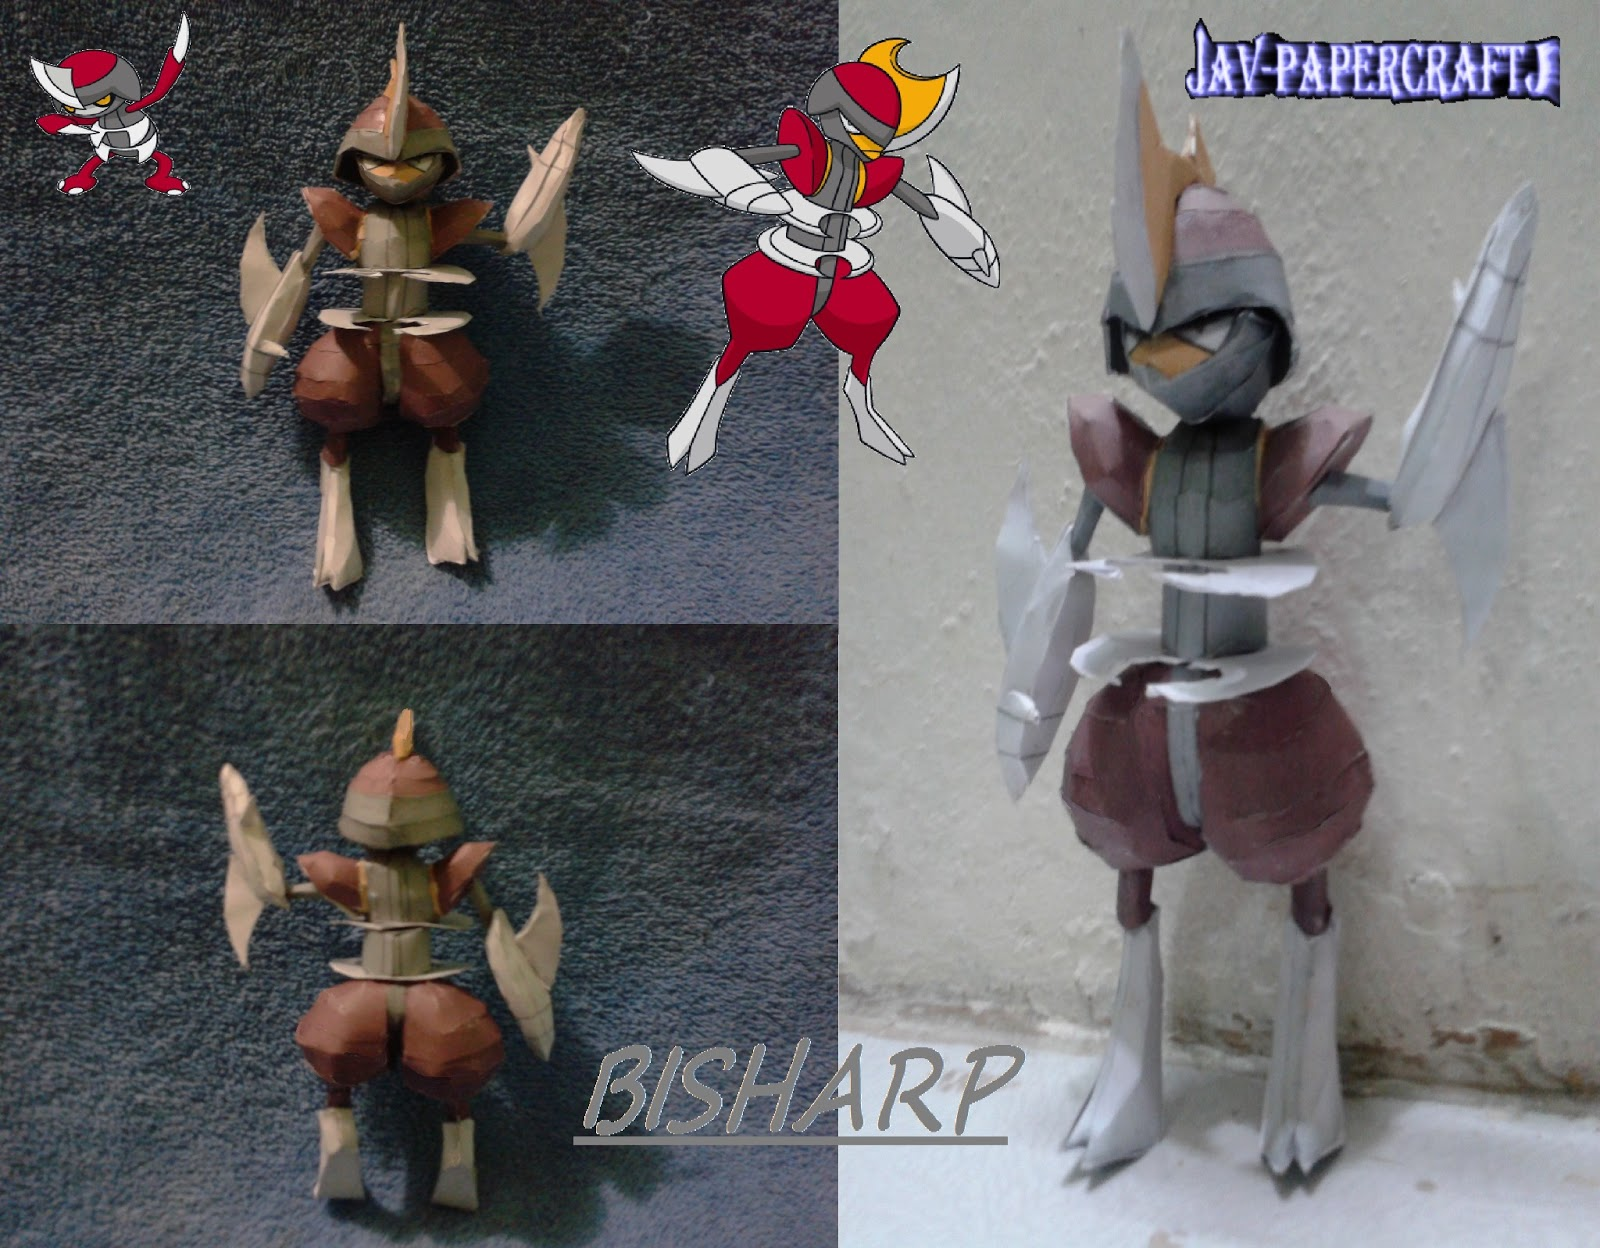 Pokemon Bisharp Papercraft